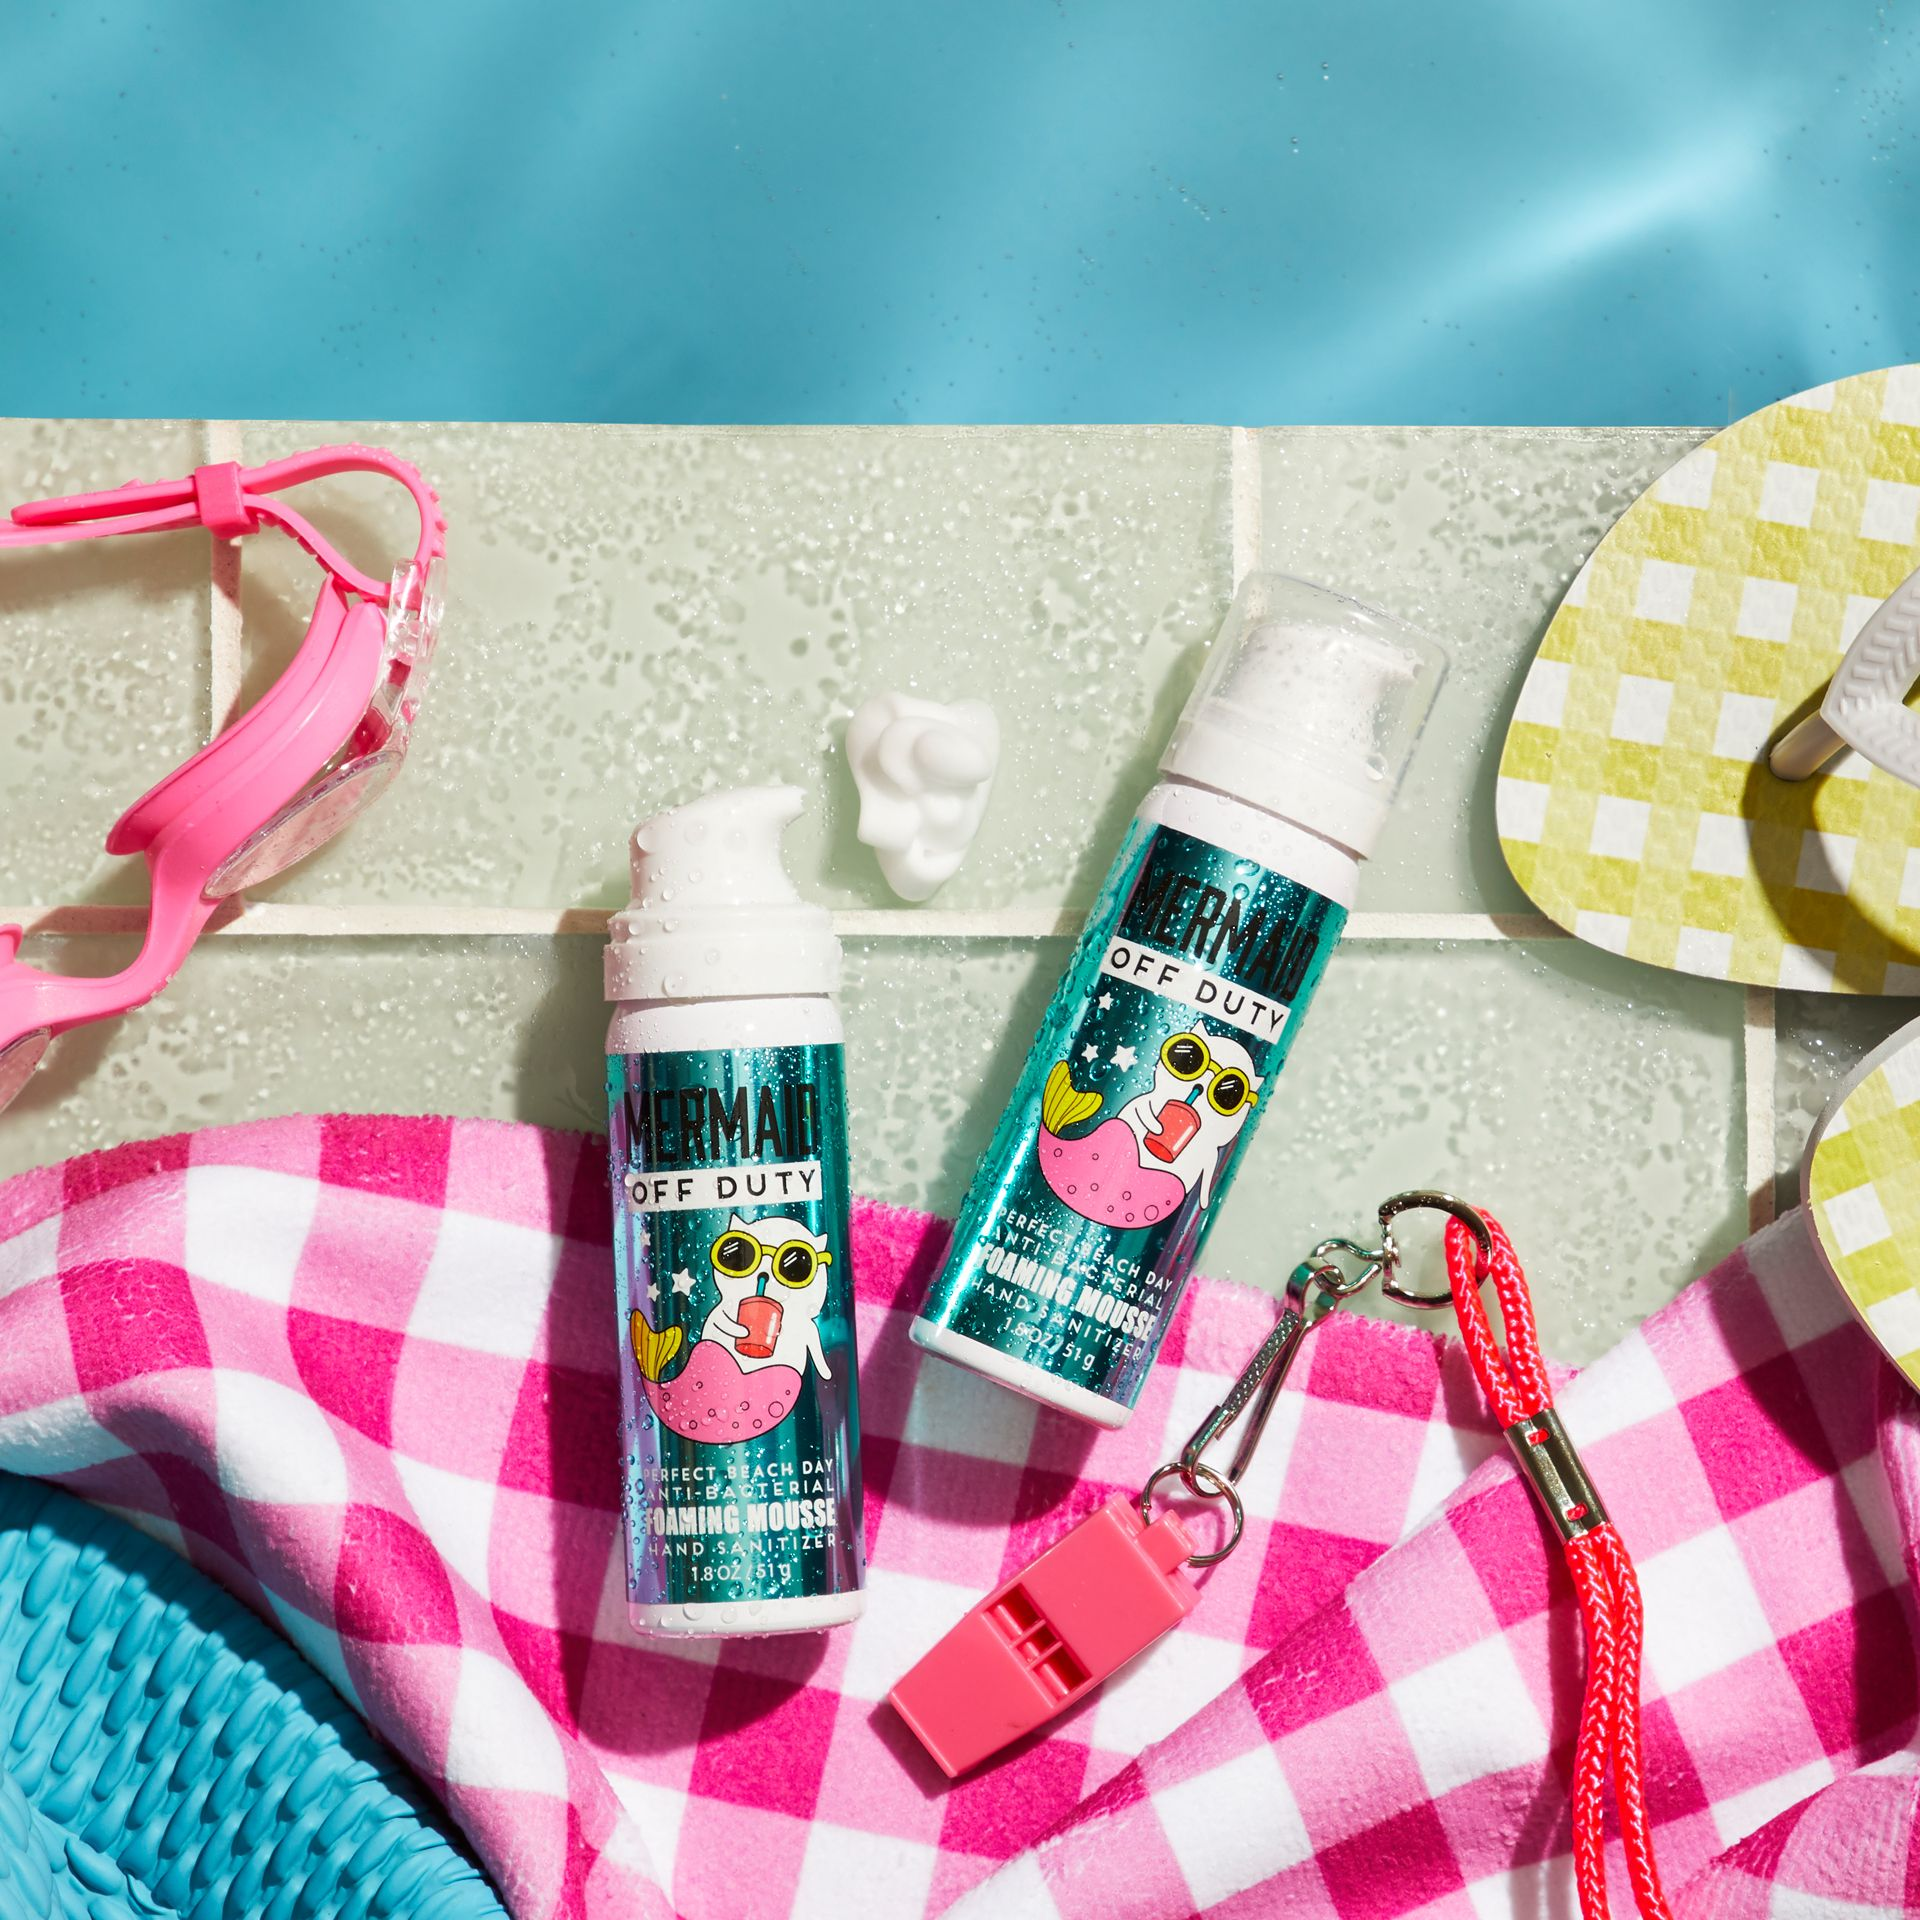 Mermaid Off Duty Foaming Mousse Sanitizer Bath And Body Works